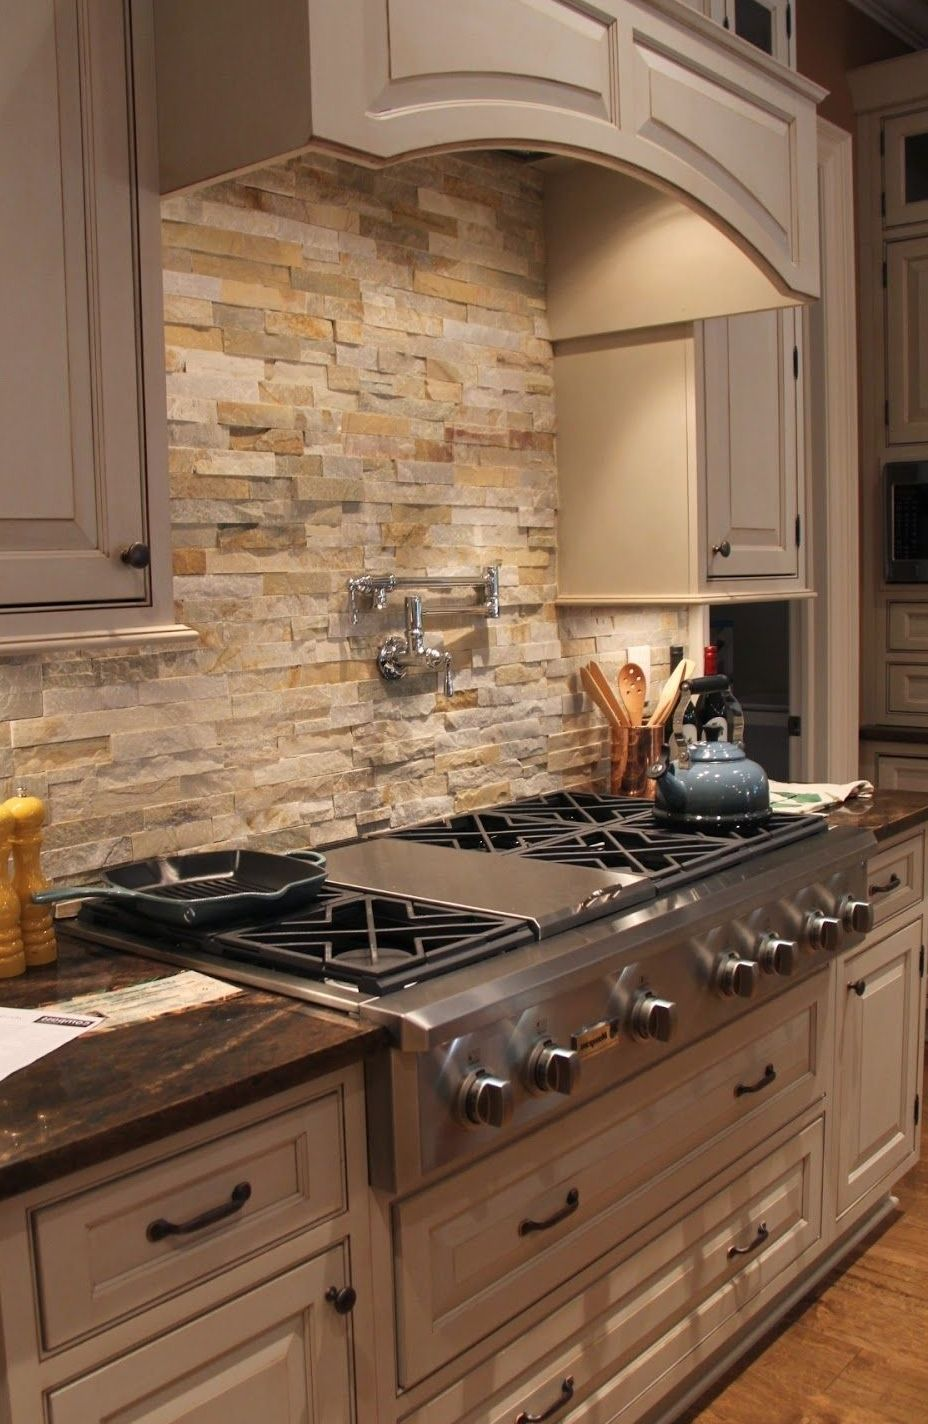 101 resources stacked tile house elegant on 69 Types Of Kitchen Tiles To Choose For A New Kitchen Design id=56737